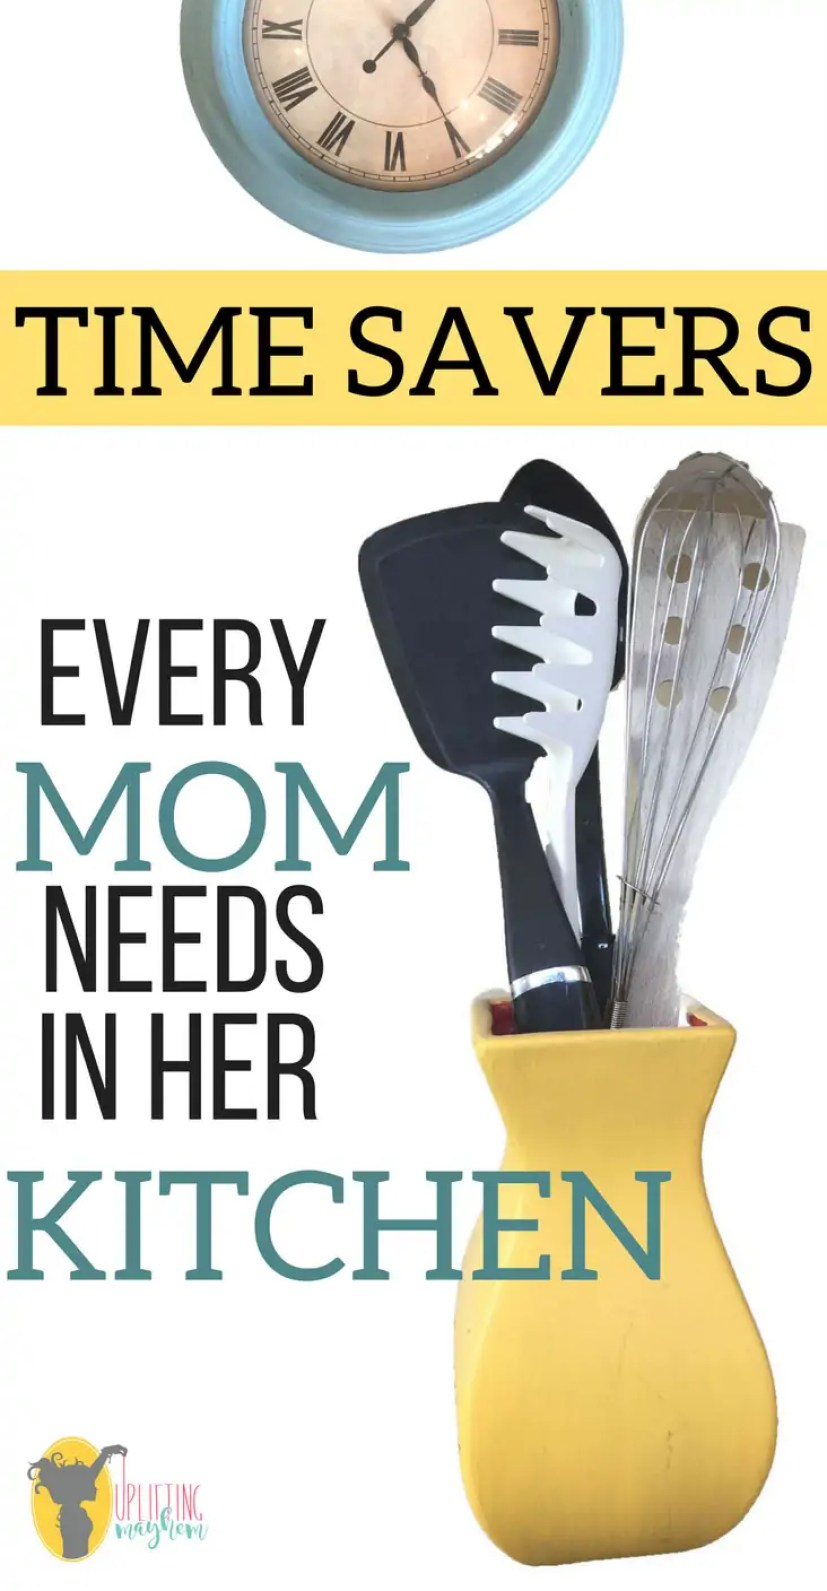 Time Savers Every Mom needs in her kitchen